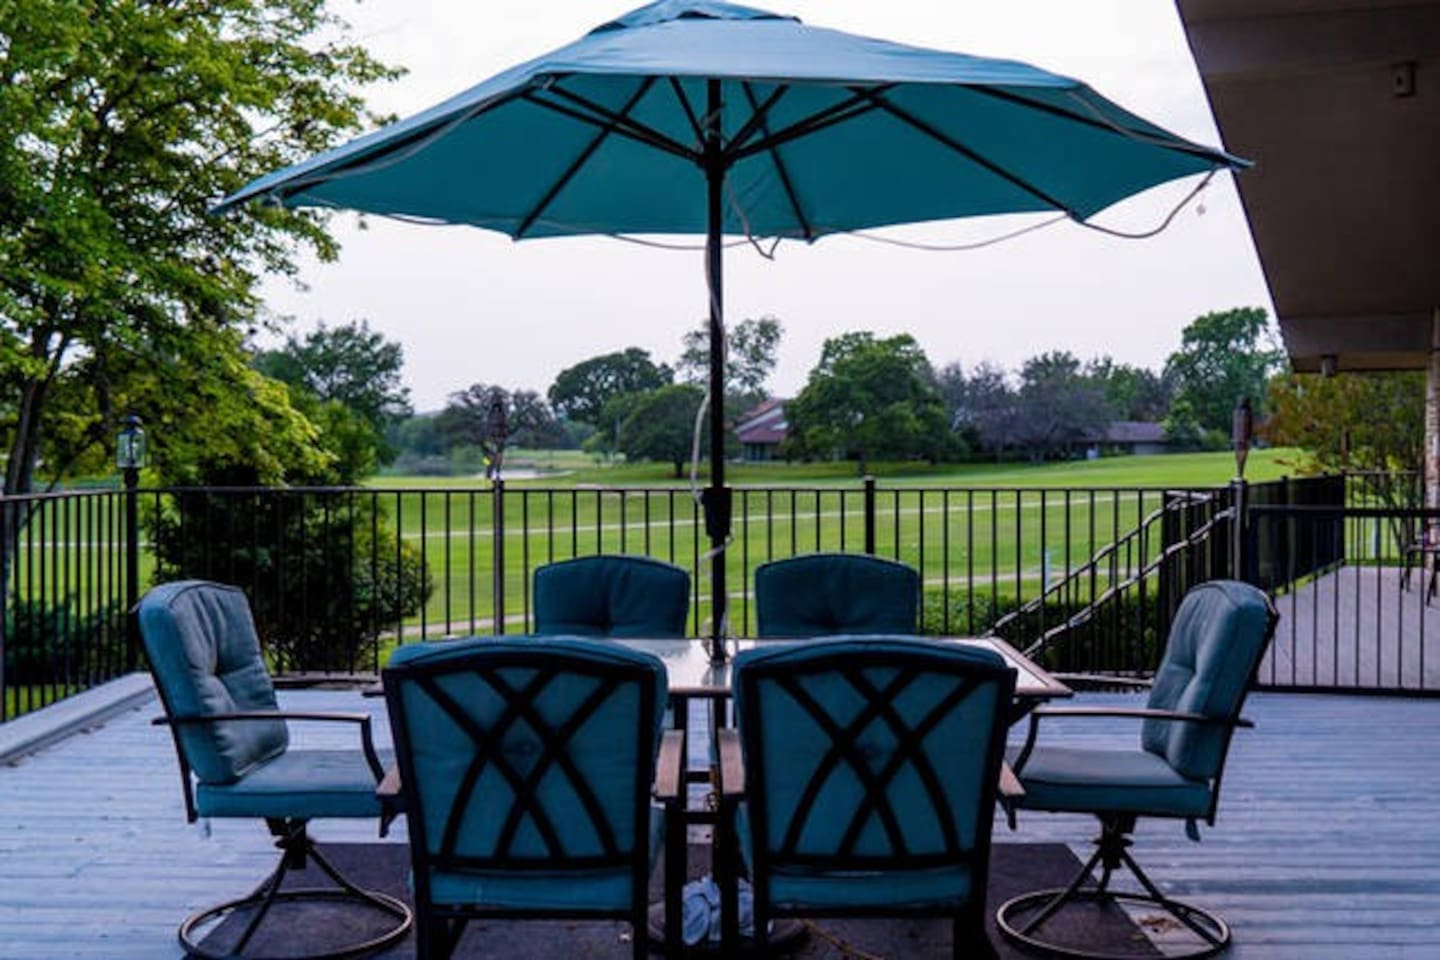 Enjoy a relaxing cup of coffee on the deck while watching the golfers or the deer.